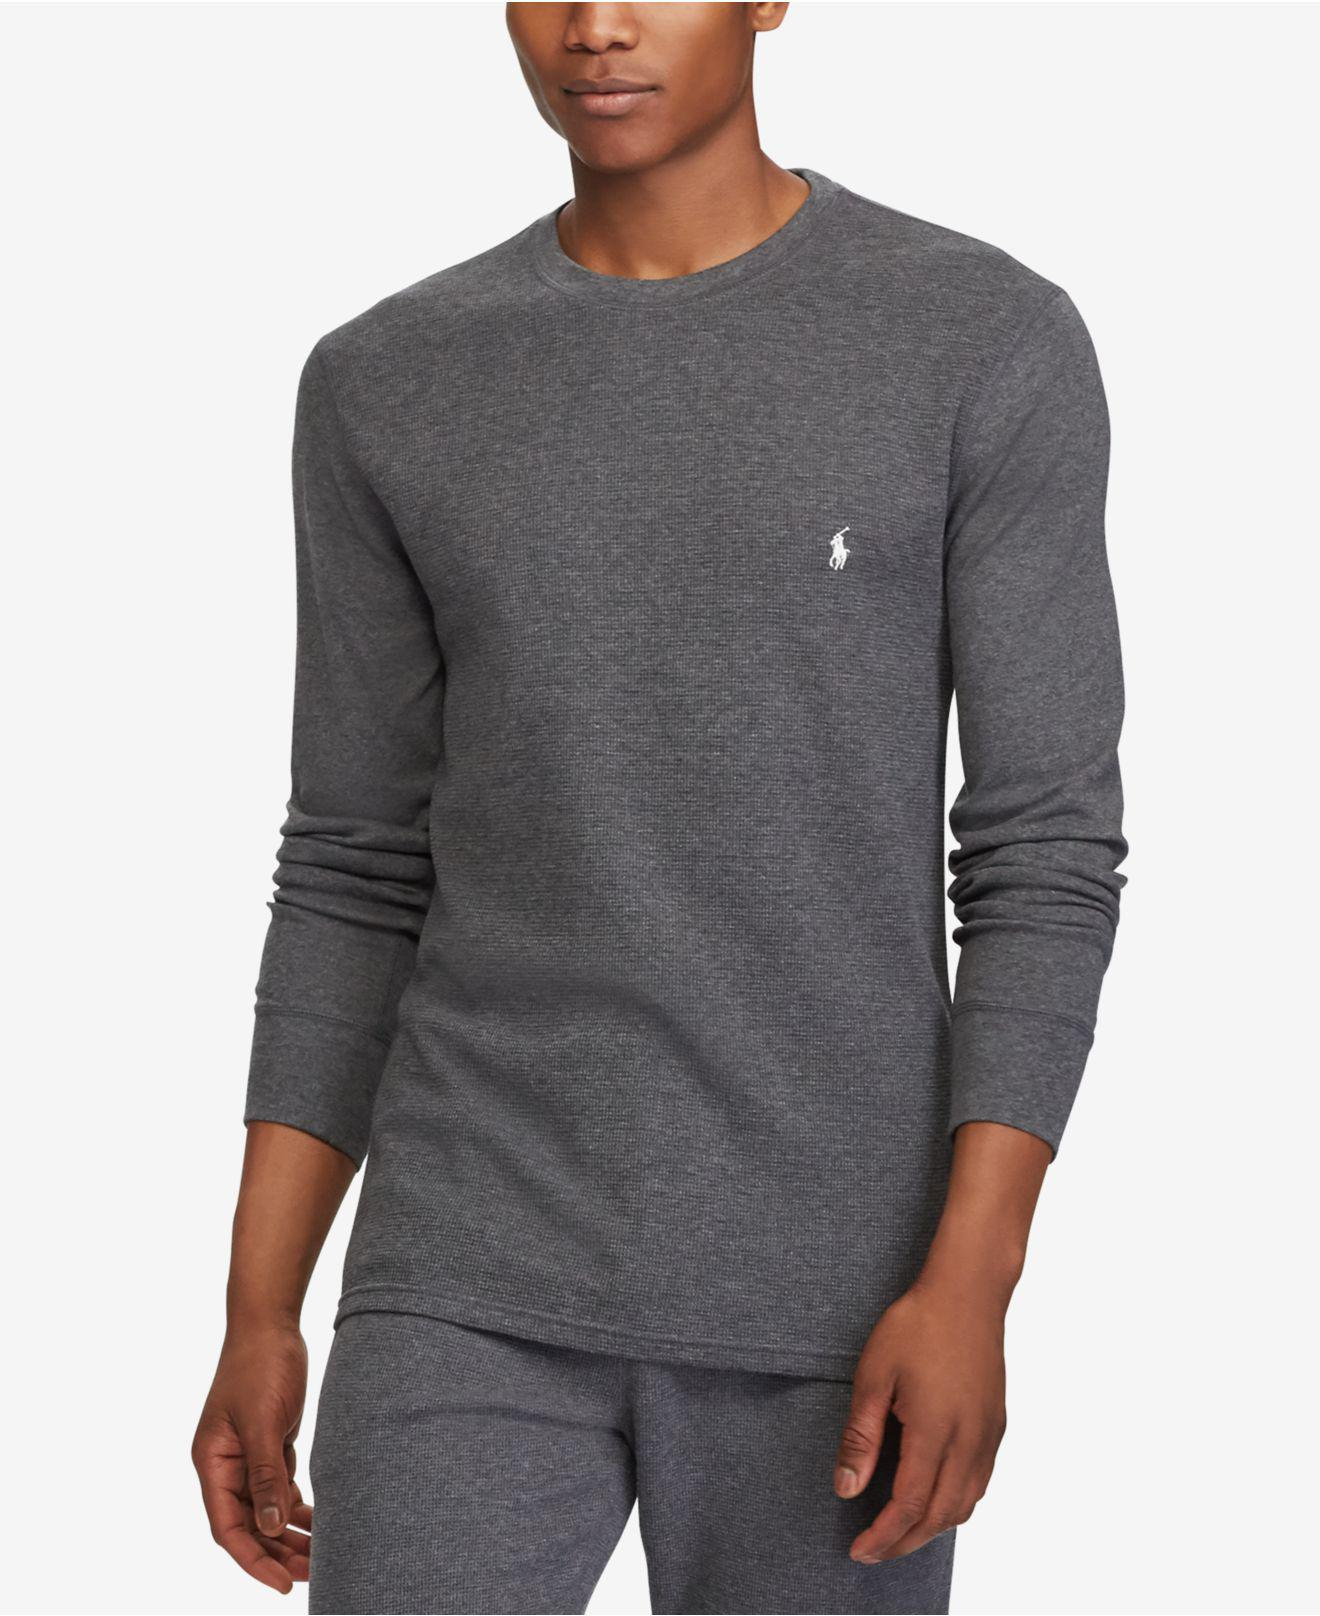 5db72b57 Lyst - Polo Ralph Lauren Waffle-knit Thermal in Gray for Men